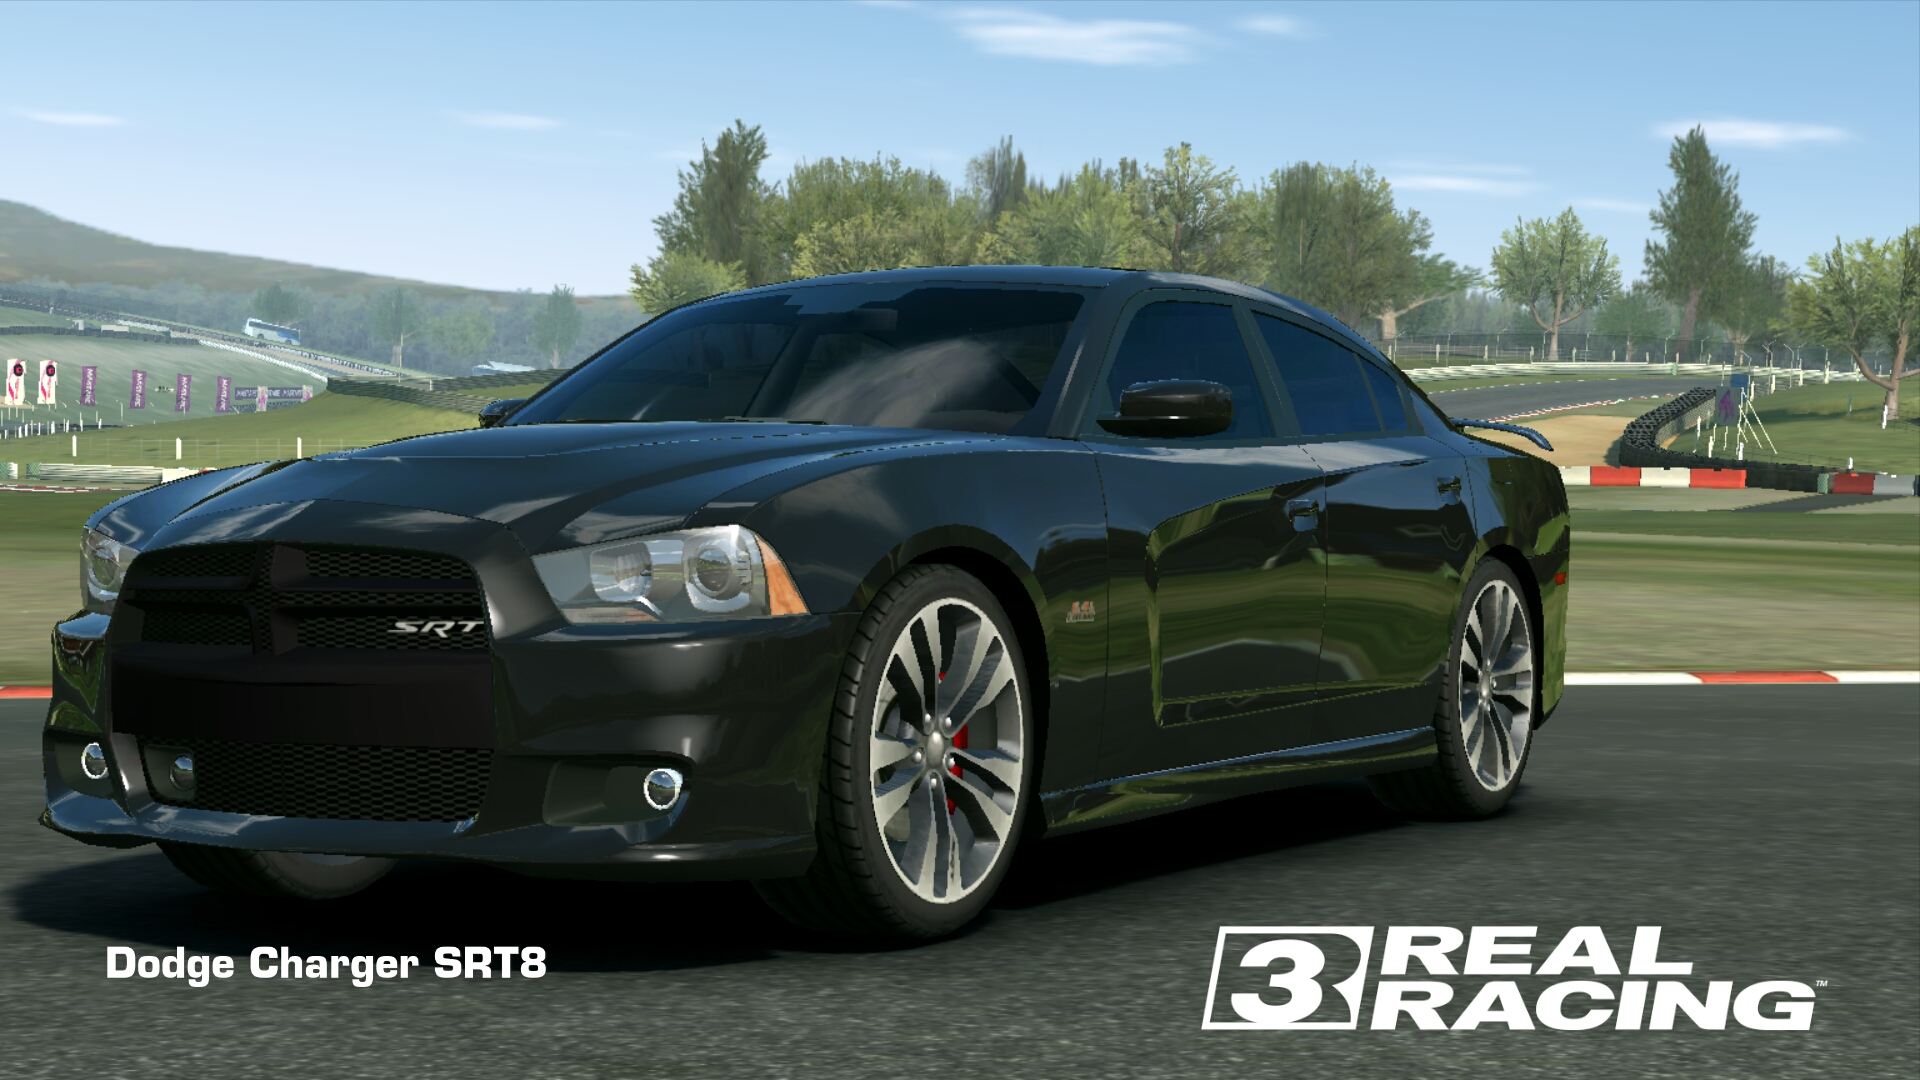 Showcase Dodge Charger SRT8